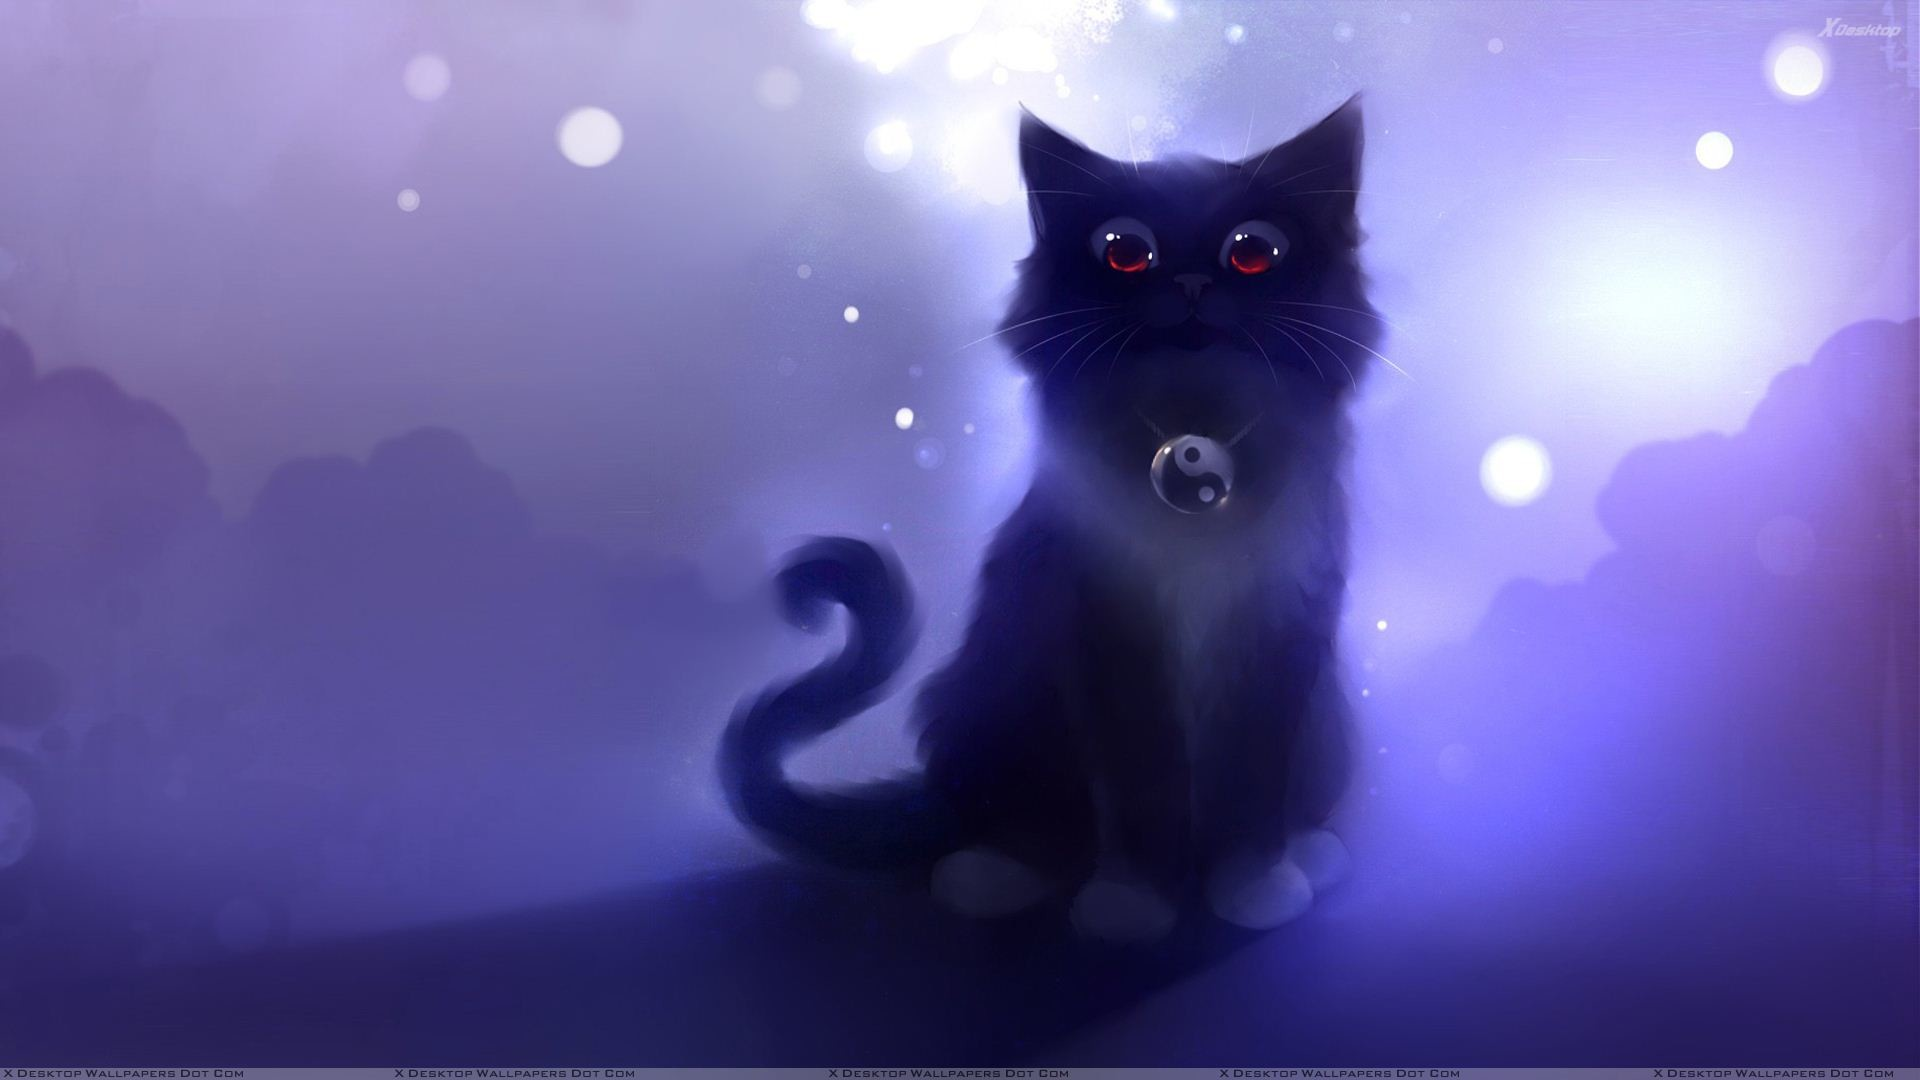 Black Cartoon Wallpaper 55 Image Collections Of: Black Cat Wallpapers (71+ Images